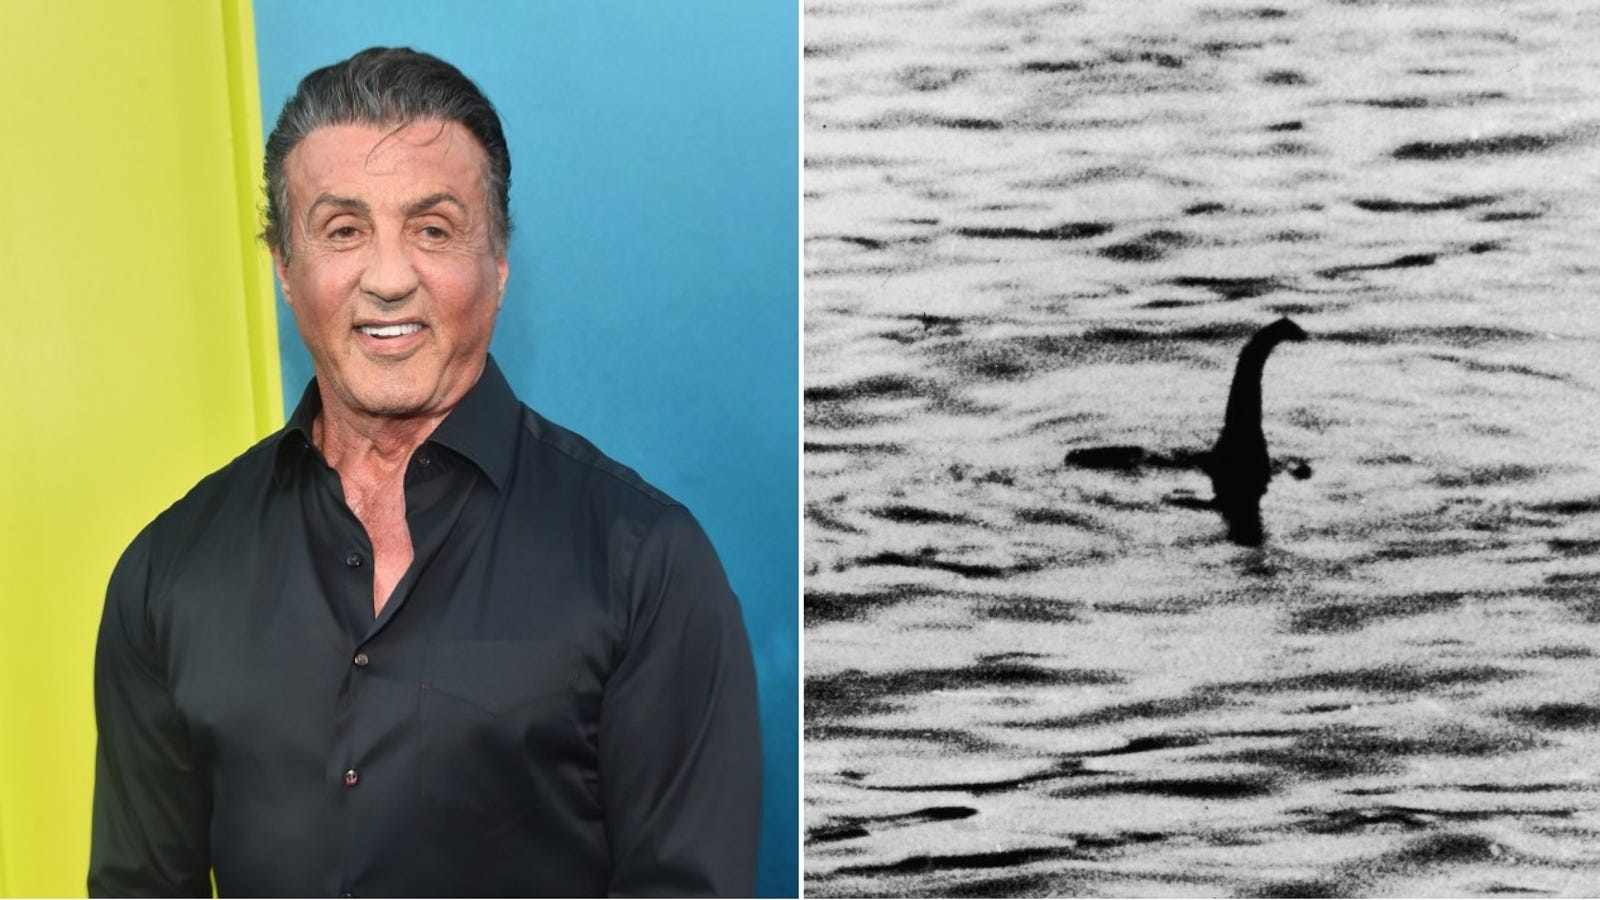 Sylvester Stallone has been trying to make a movie where Rambo fights a monster